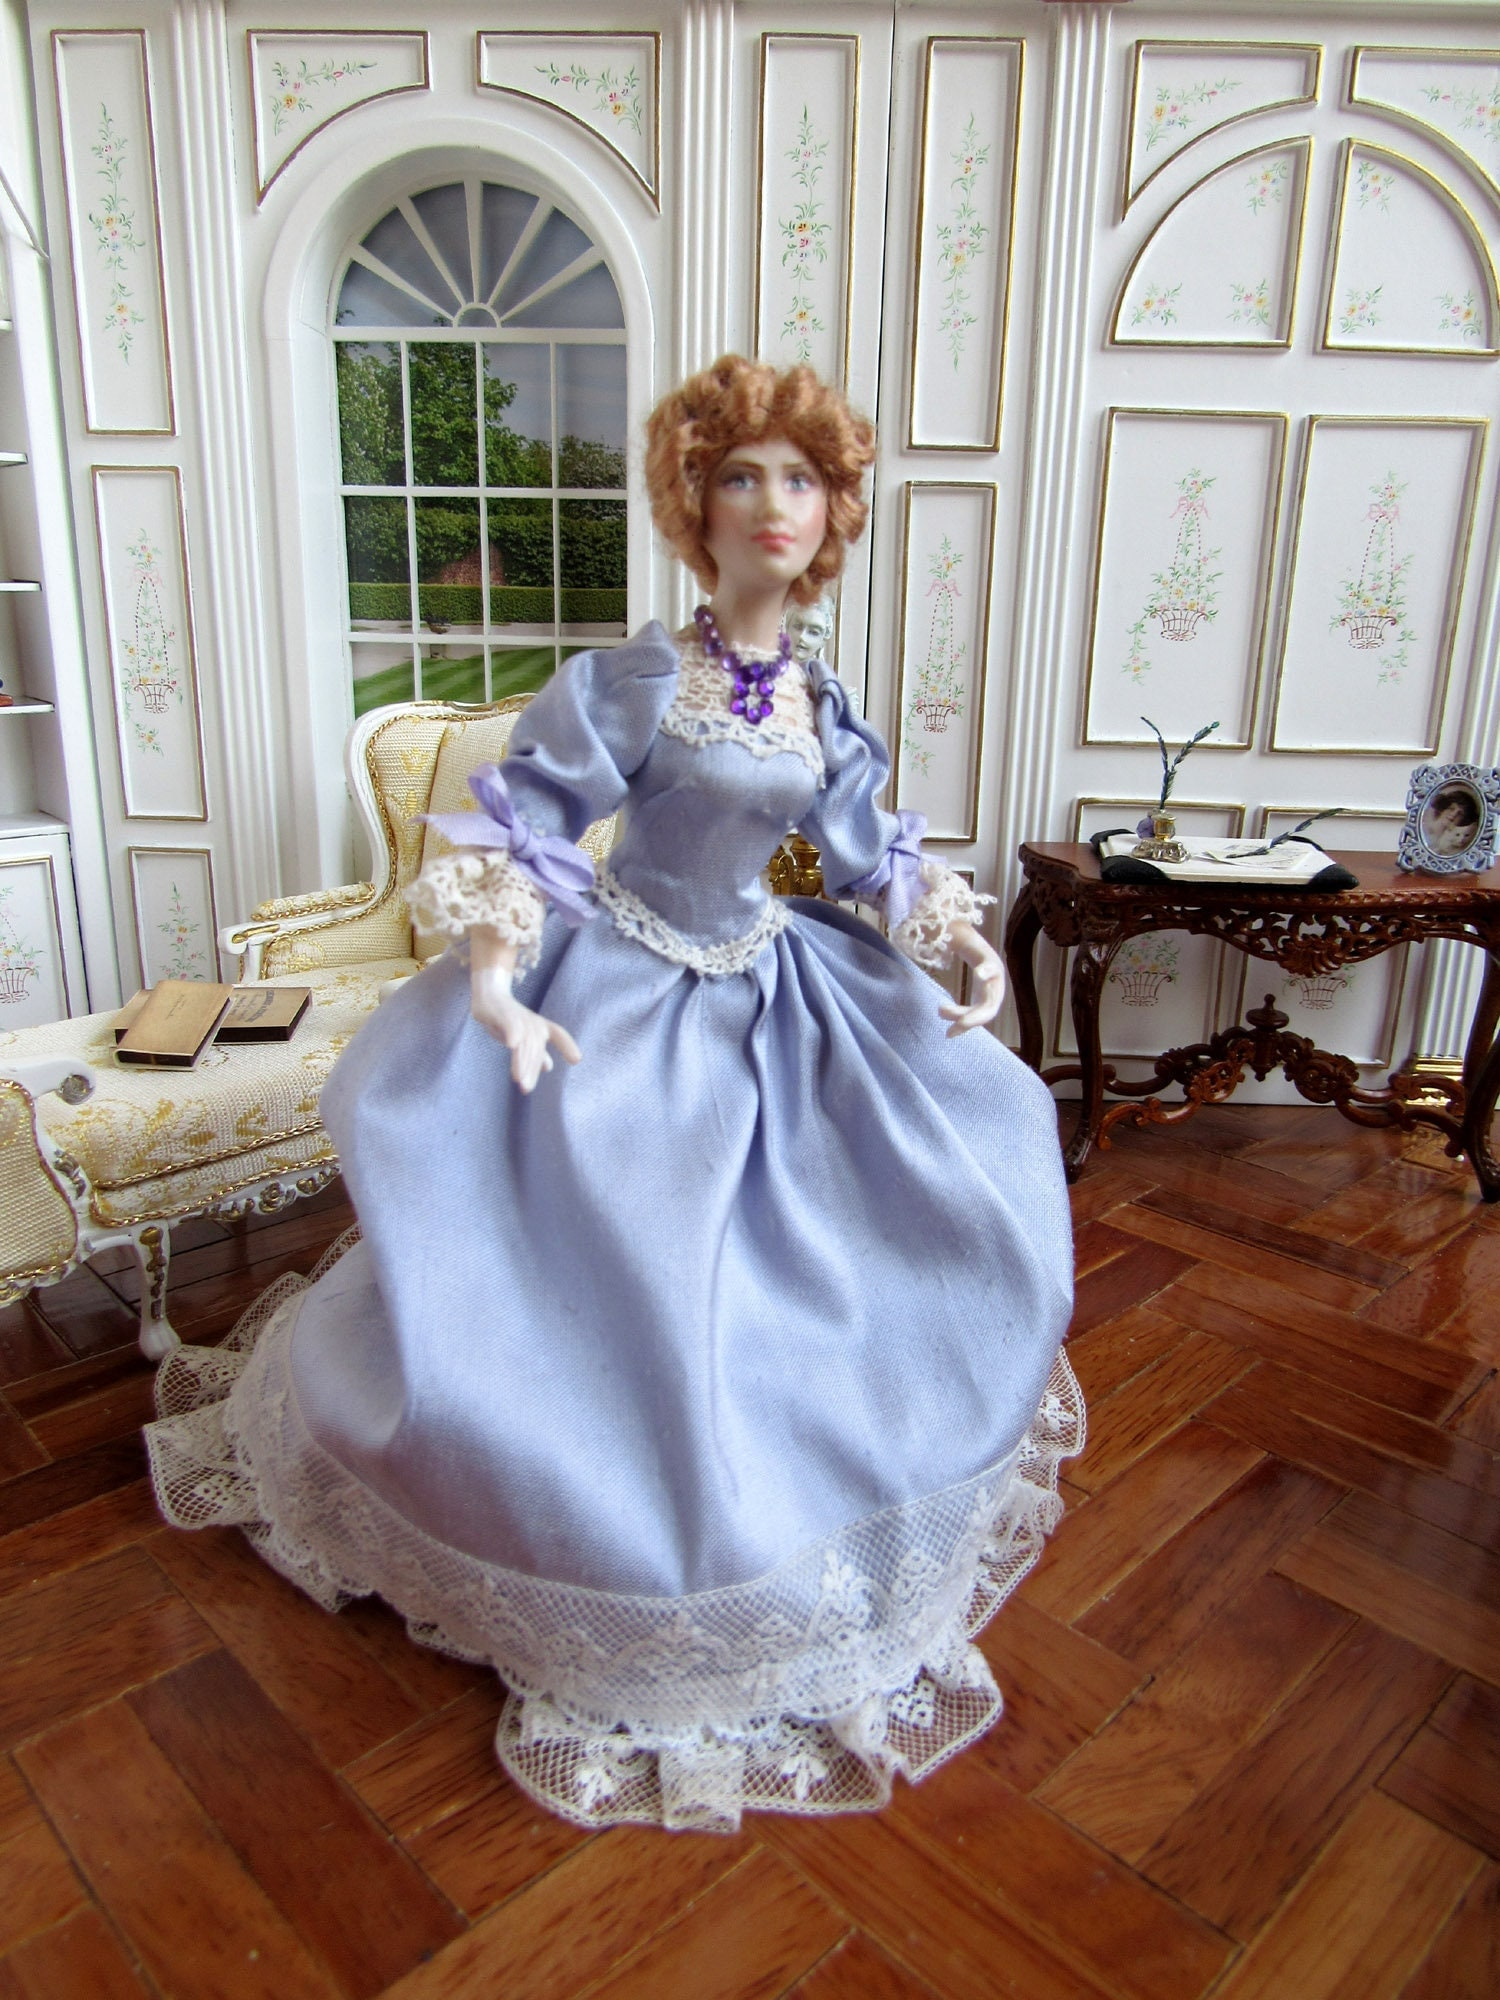 1:12 scale Dolls House Miniature Porcelain Doll with Silk dress character doll for Georgian Dolls House